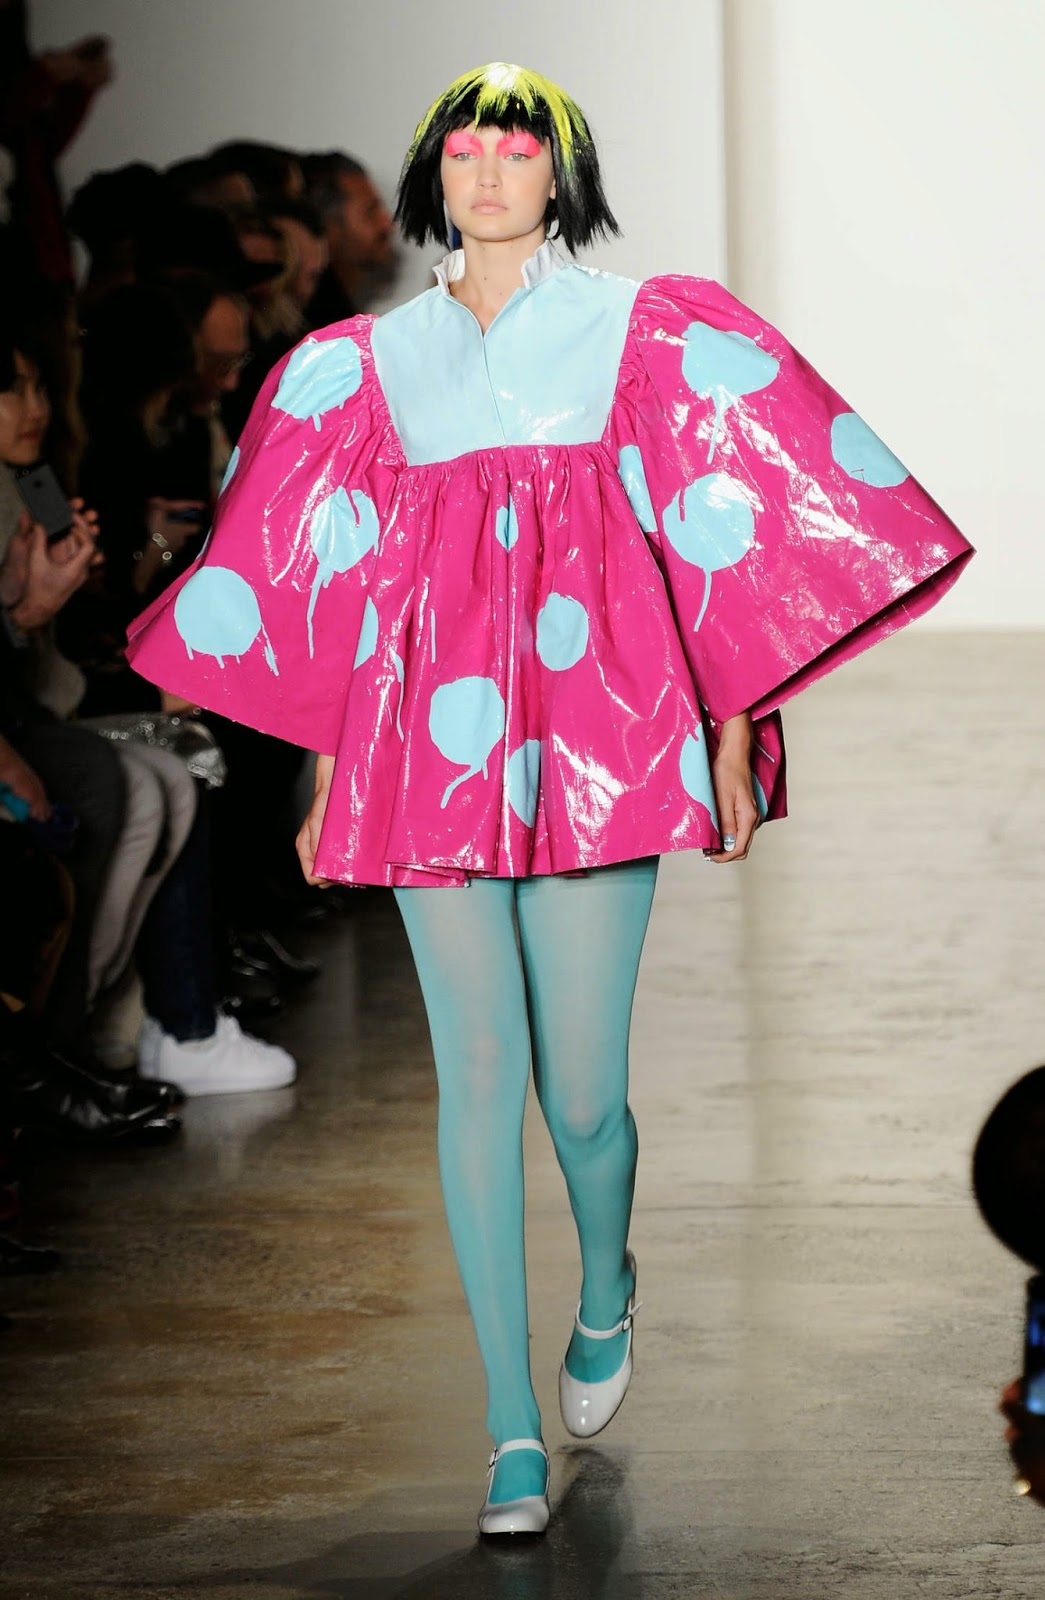 Gigi Hadid is whimsical at the Jeremy Scott Fall/Winter 2015 New York Fashion Week Show